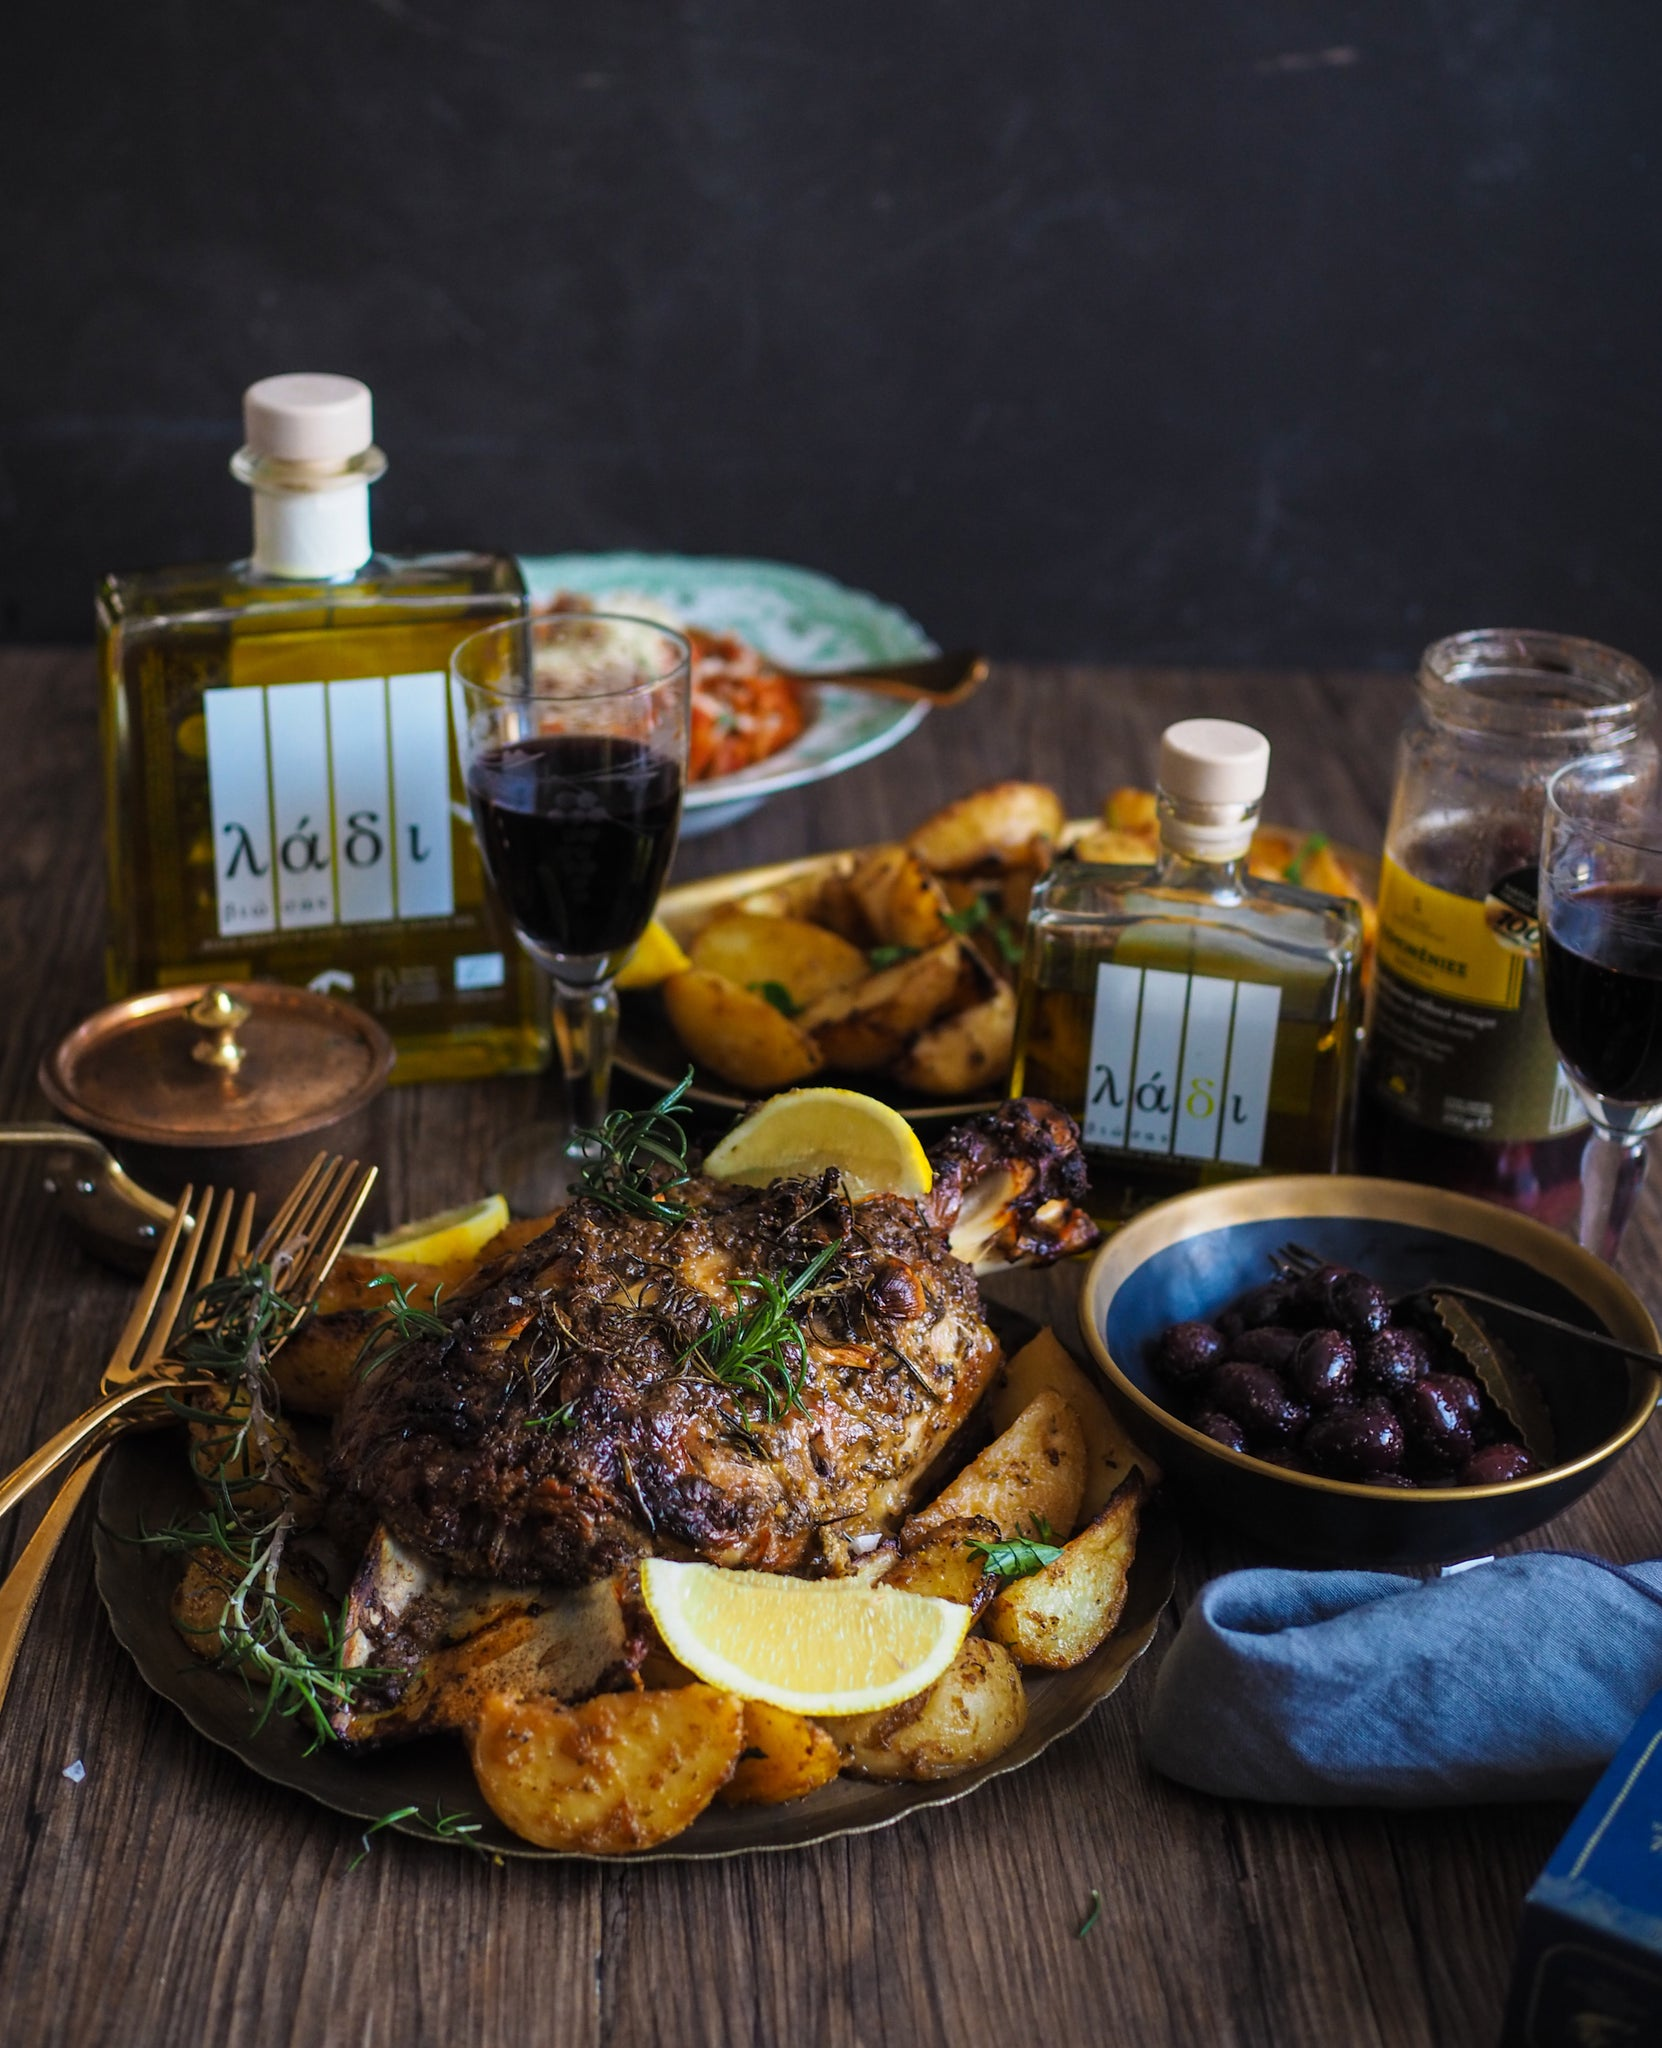 Greek slow roast lamb recipe by Not Quite Nigella with quality cooking ingredients by Grecian Purveyor. Shop gourmet foods online